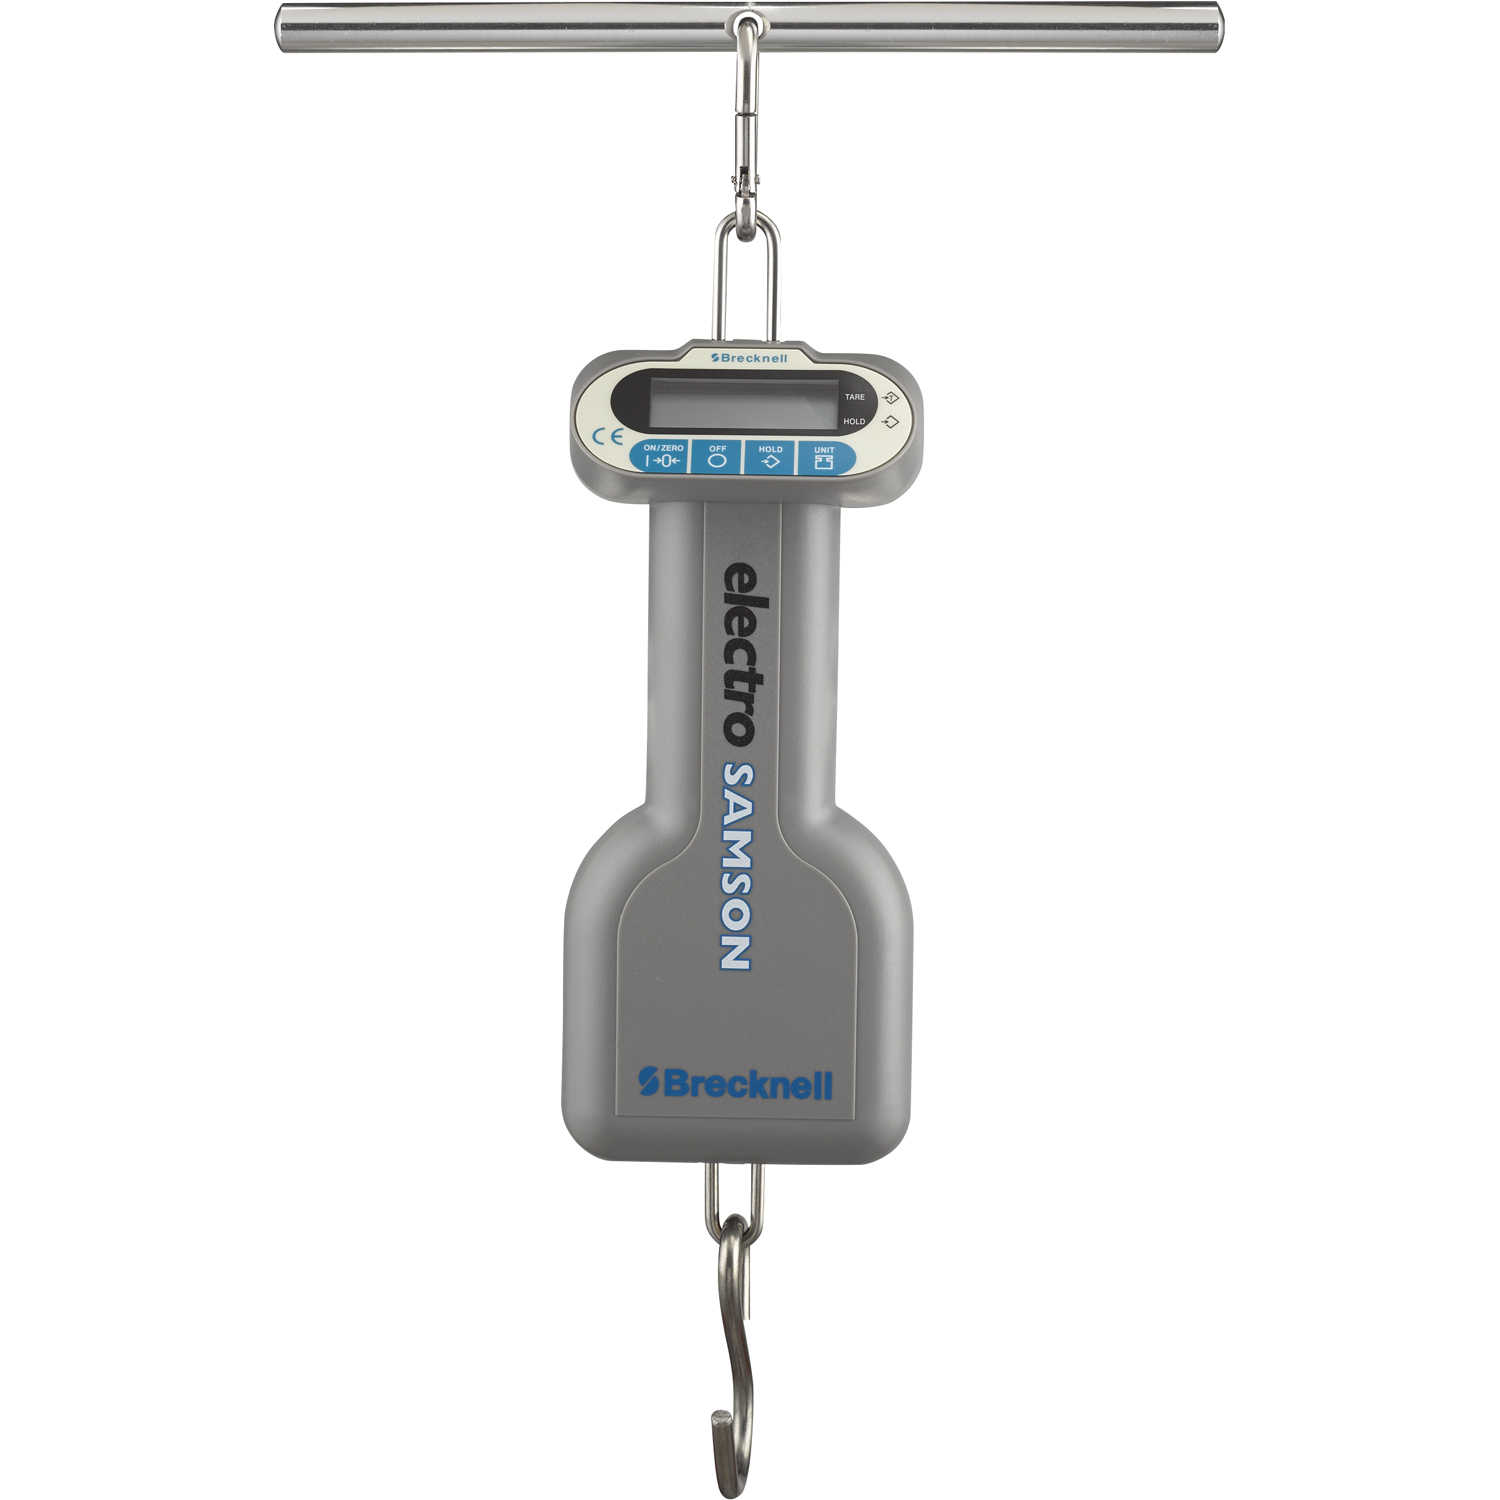 464c81f762a5 Details about 22 lbs. Brecknell ElectroSamson Digital Hanging Scale 22 lbs.  x 0.02 lb./10 k...